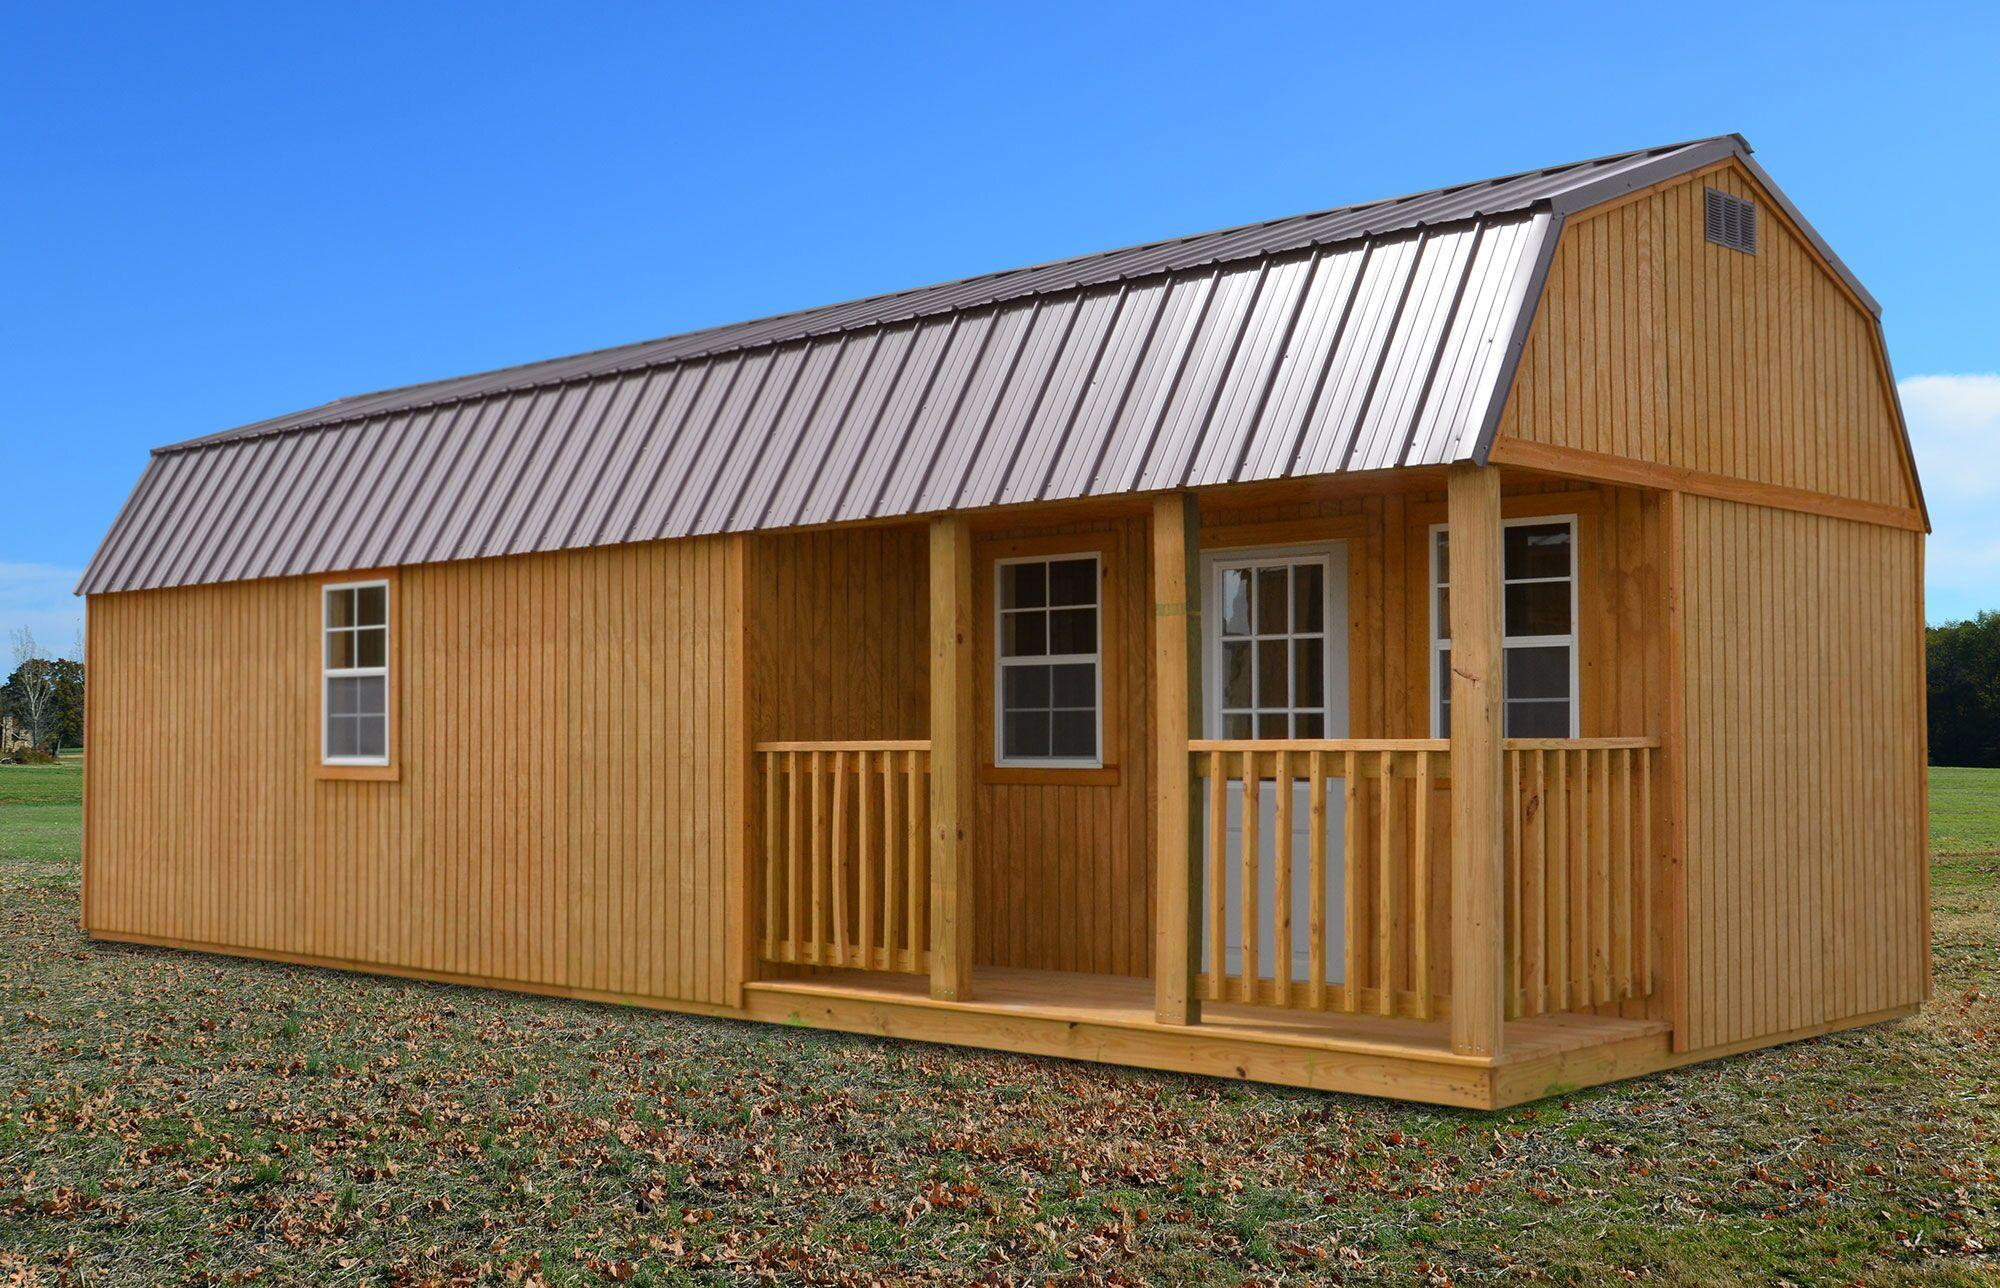 Treated side lofted barn cabin derksen portable buildings for Lofted barn shed